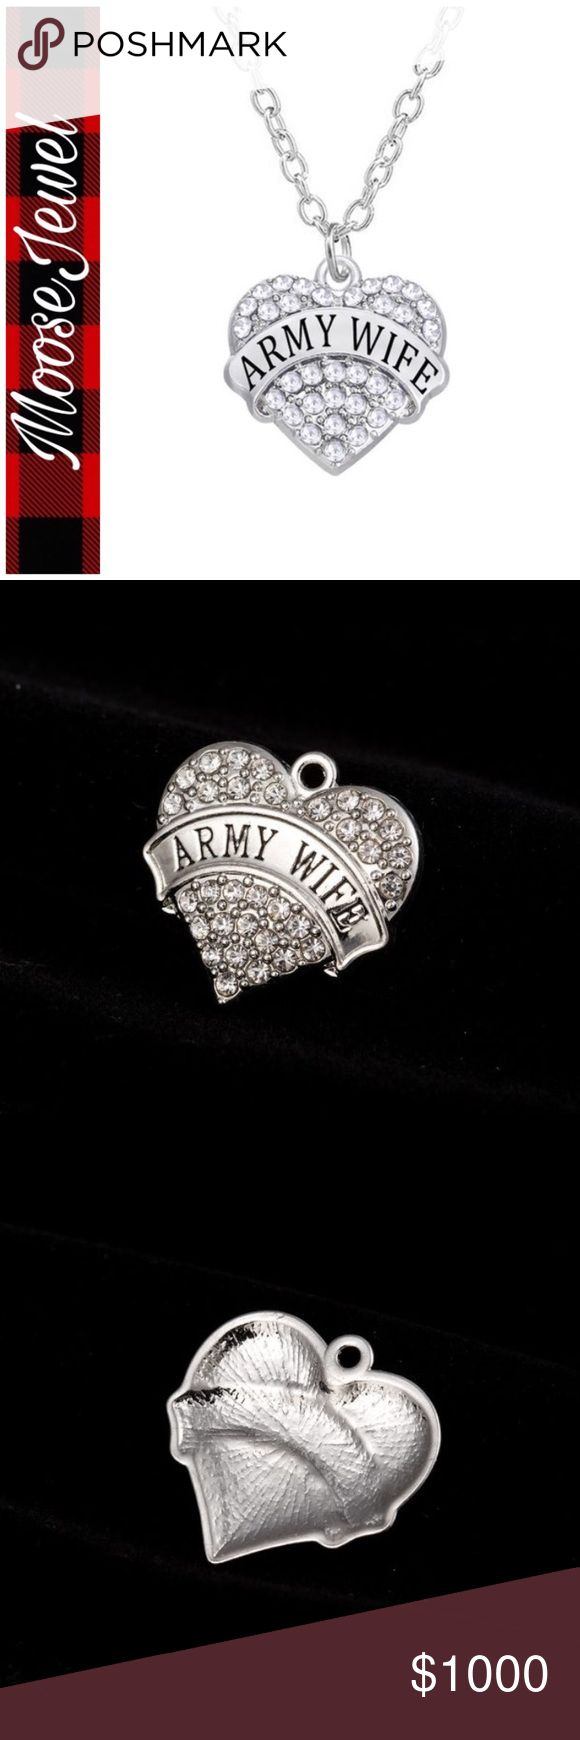 COMING SOON Show your support for your Army Husband with this silver plated Army Wife necklace. MooseJewel Jewelry Necklaces